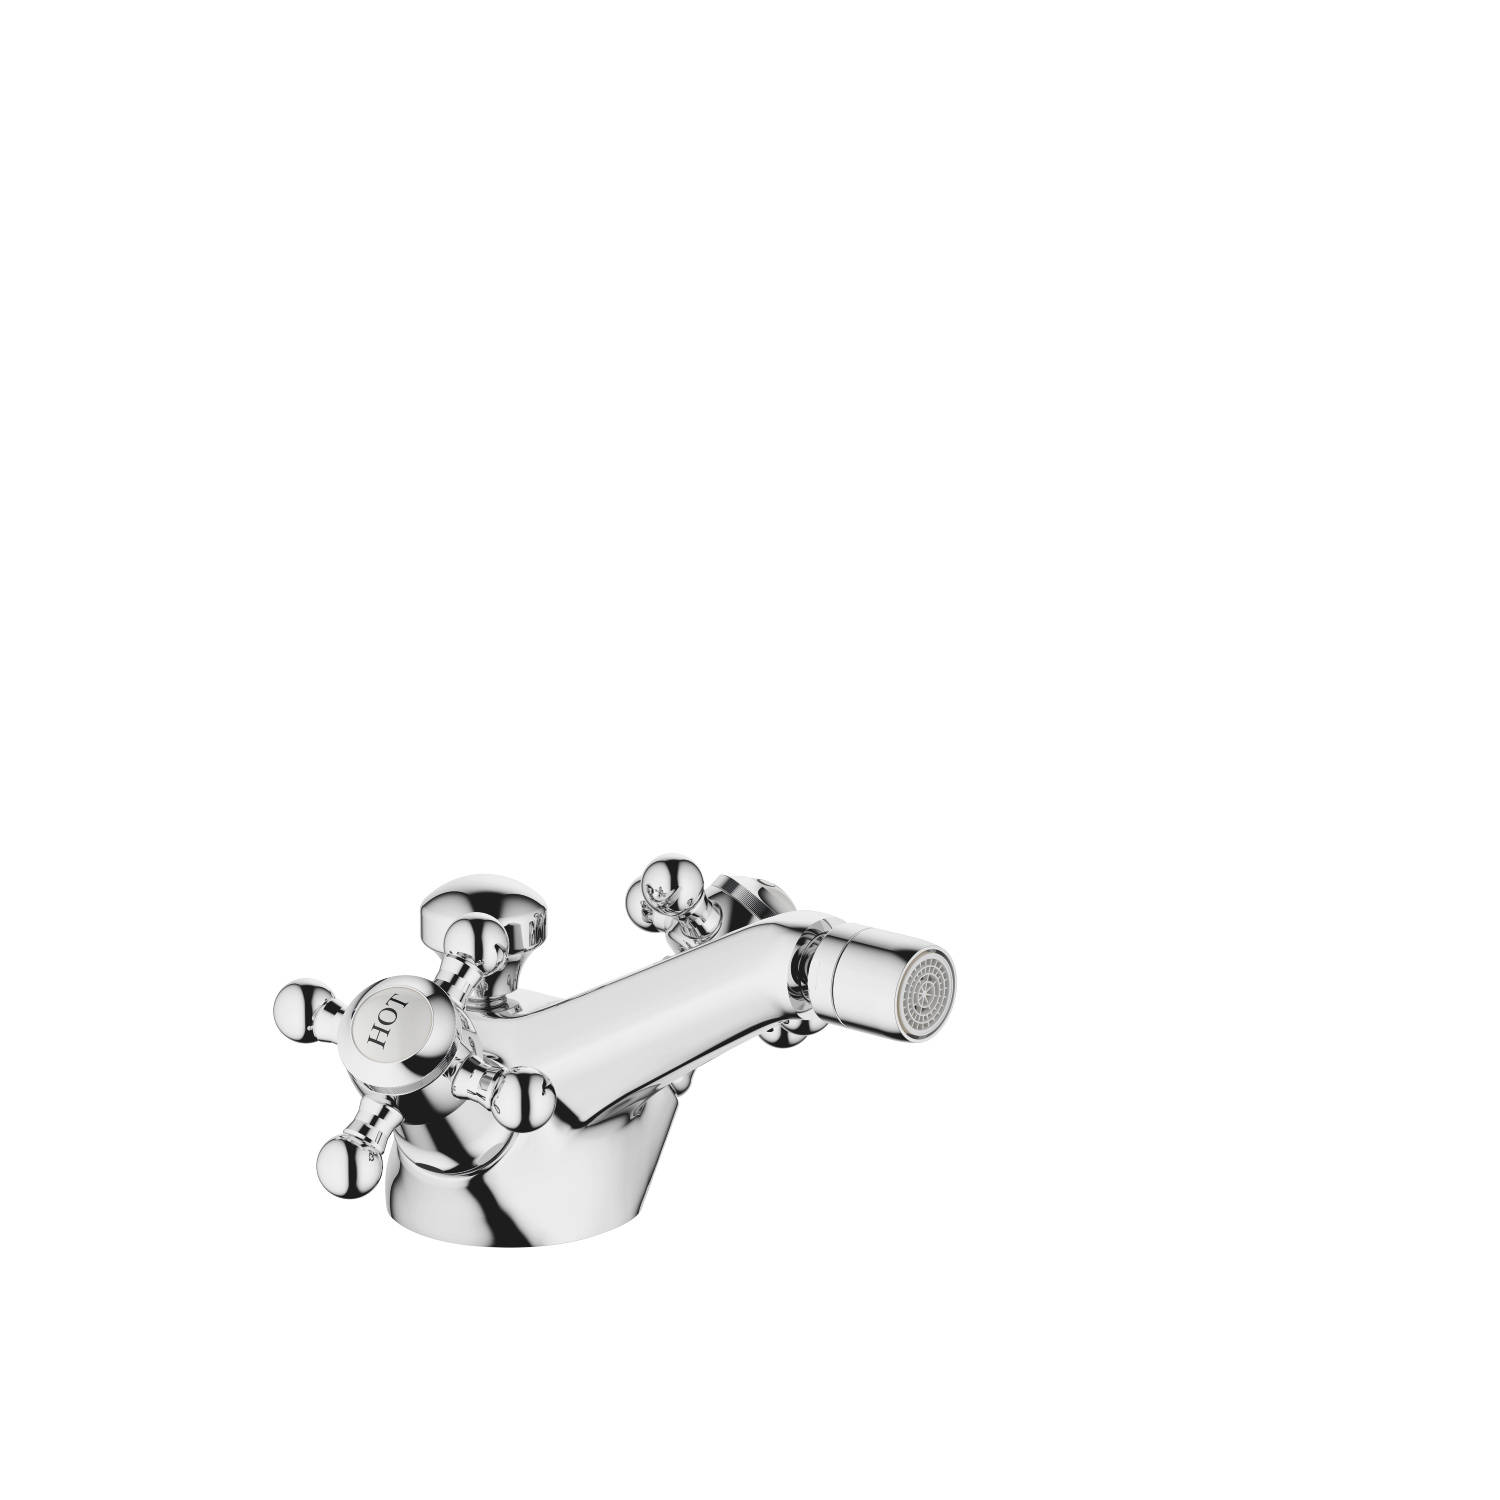 Single-hole bidet mixer with pop-up waste - polished chrome